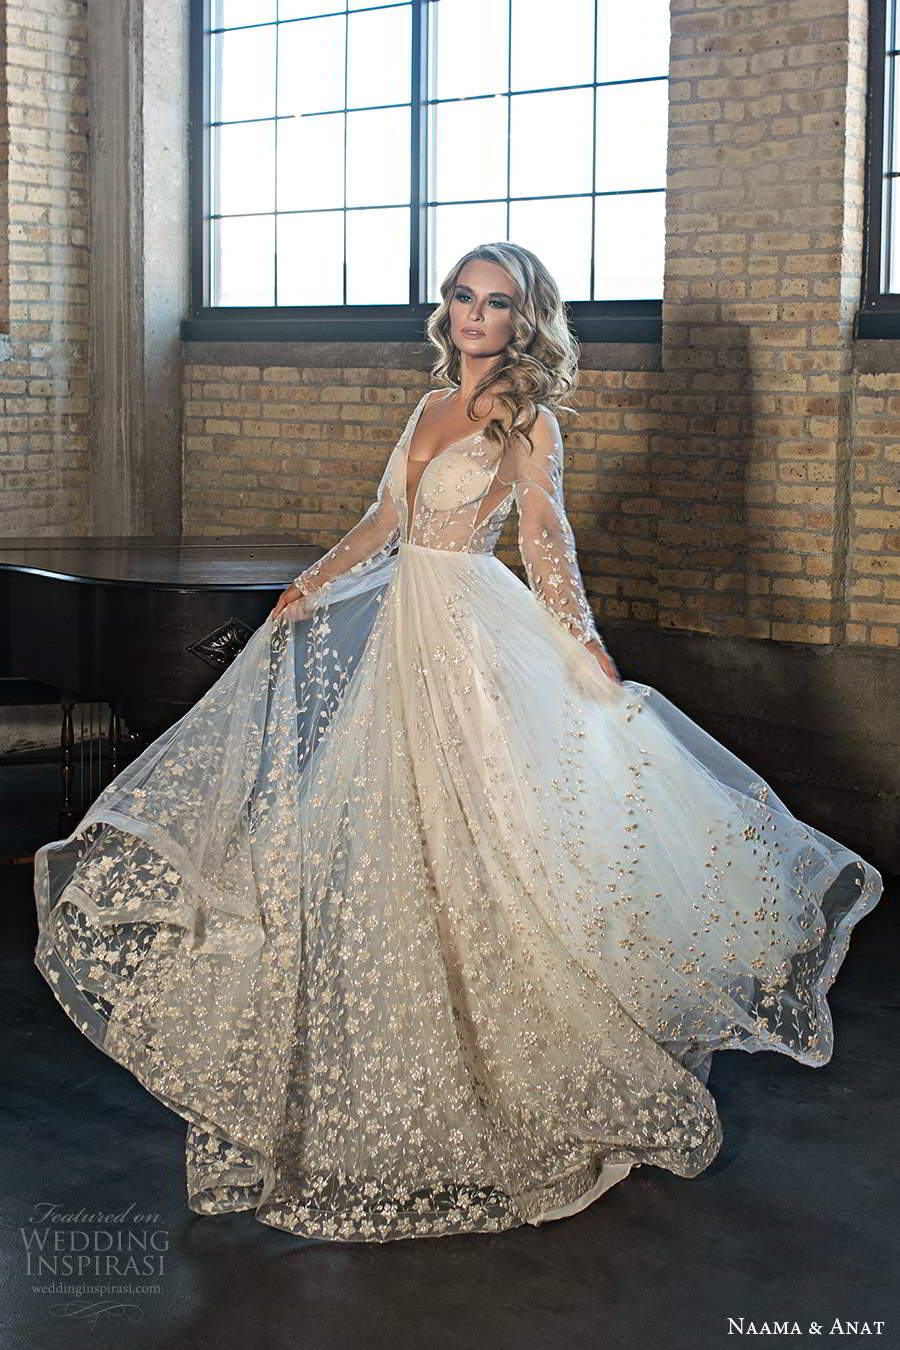 naama and anat 2020 silhouette bridal illusion long sleeves plunging v neckline heavily embellished a line ball gown wedding dress v back chapel train (4) mv